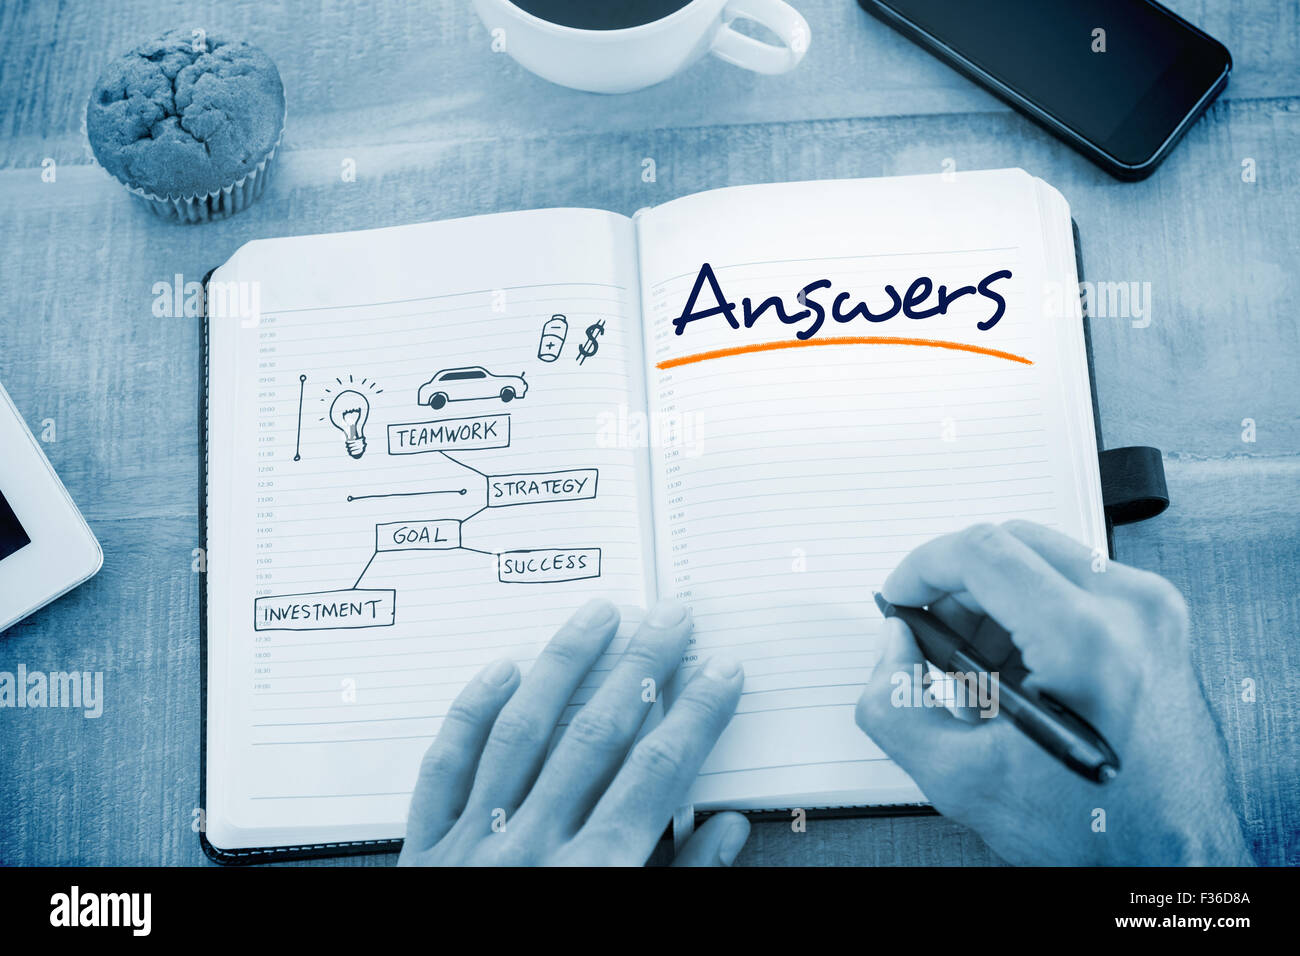 Answers against business concept vector - Stock Image